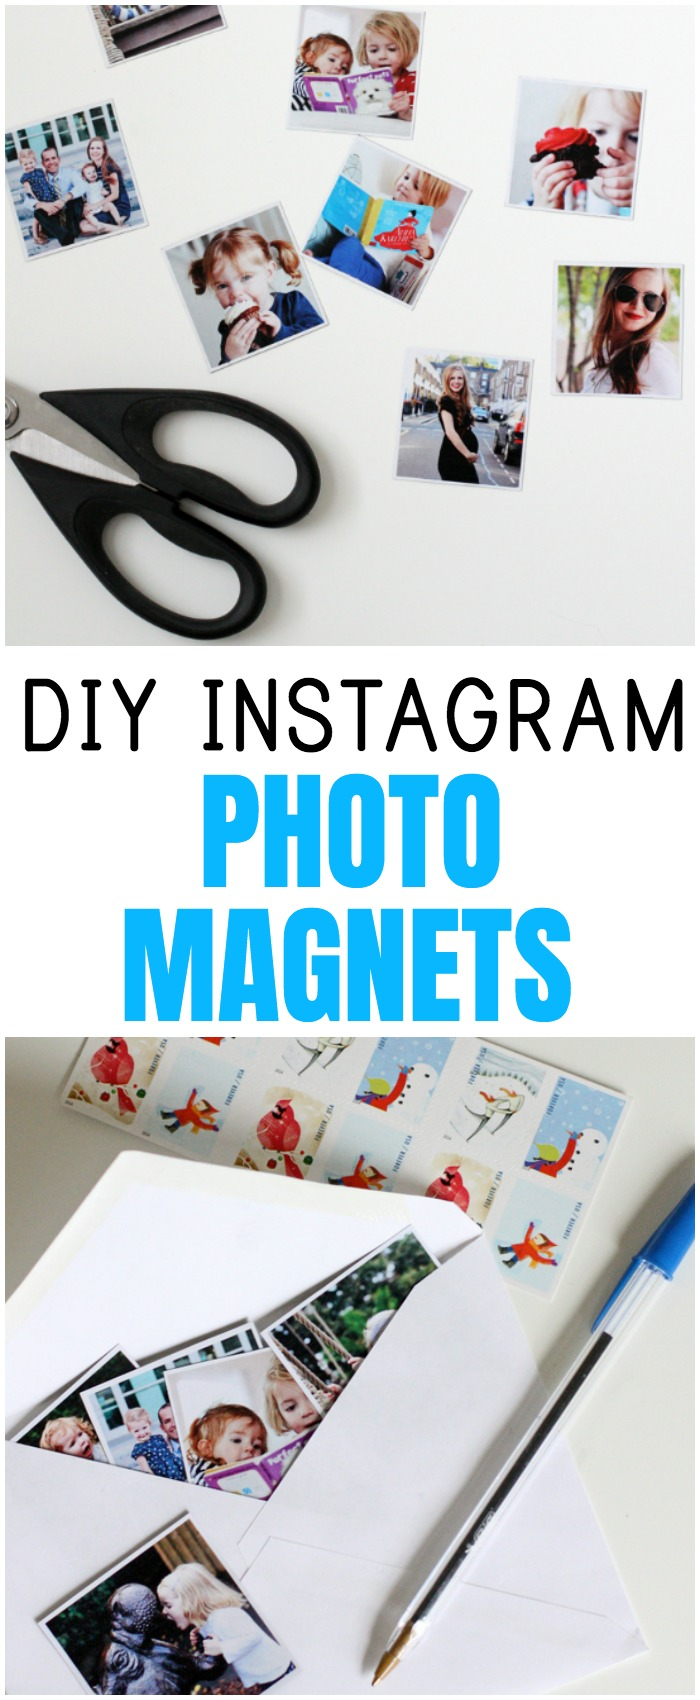 Instagram magnets